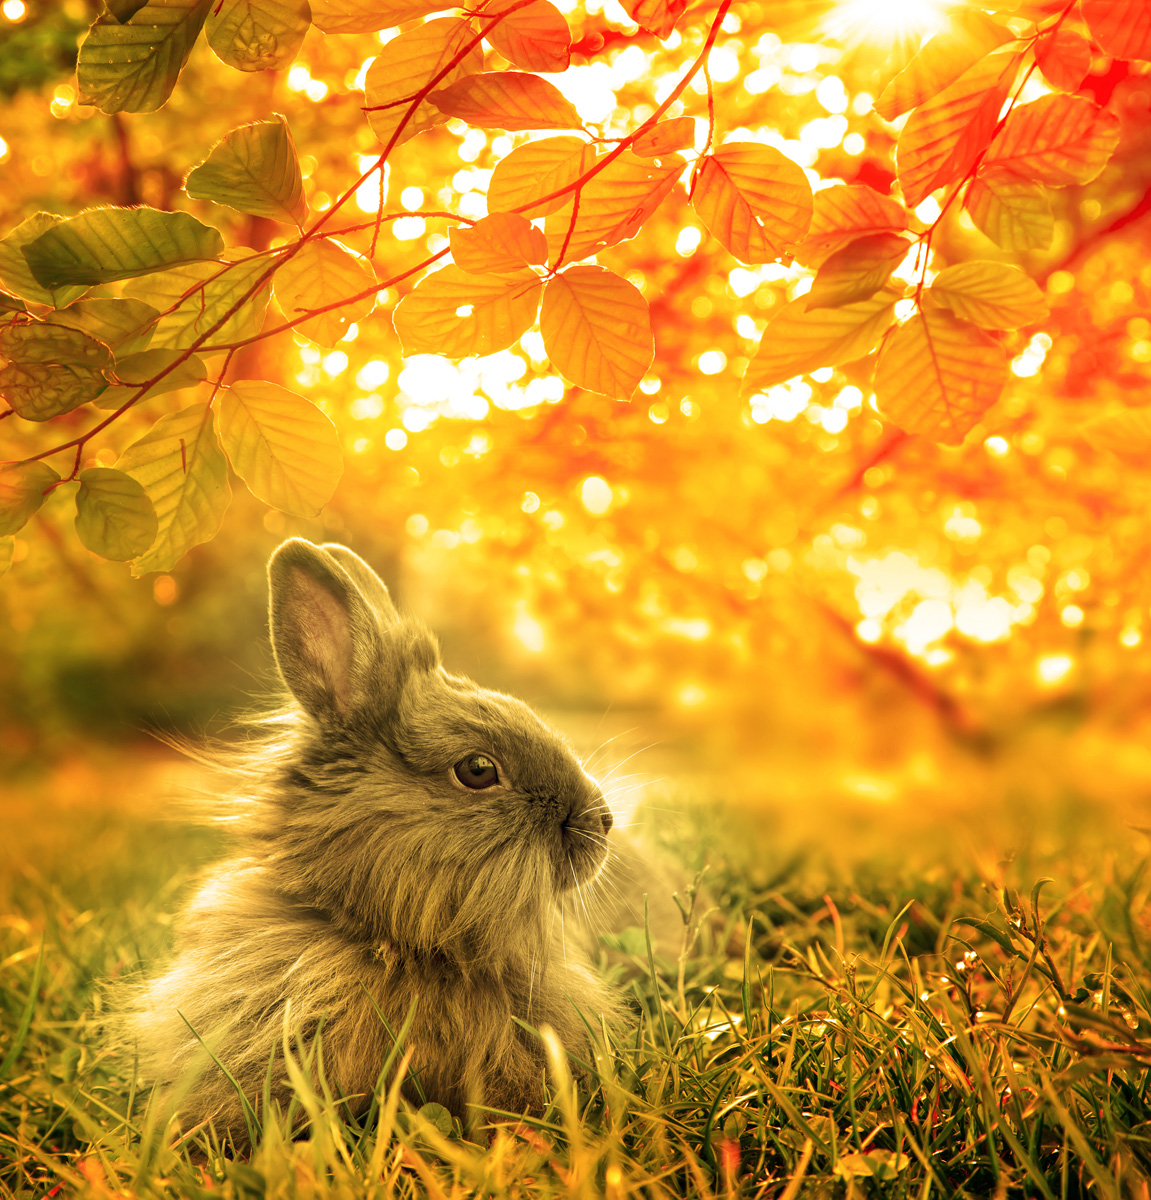 autumnal rabbit. Beautiful Art Design  background